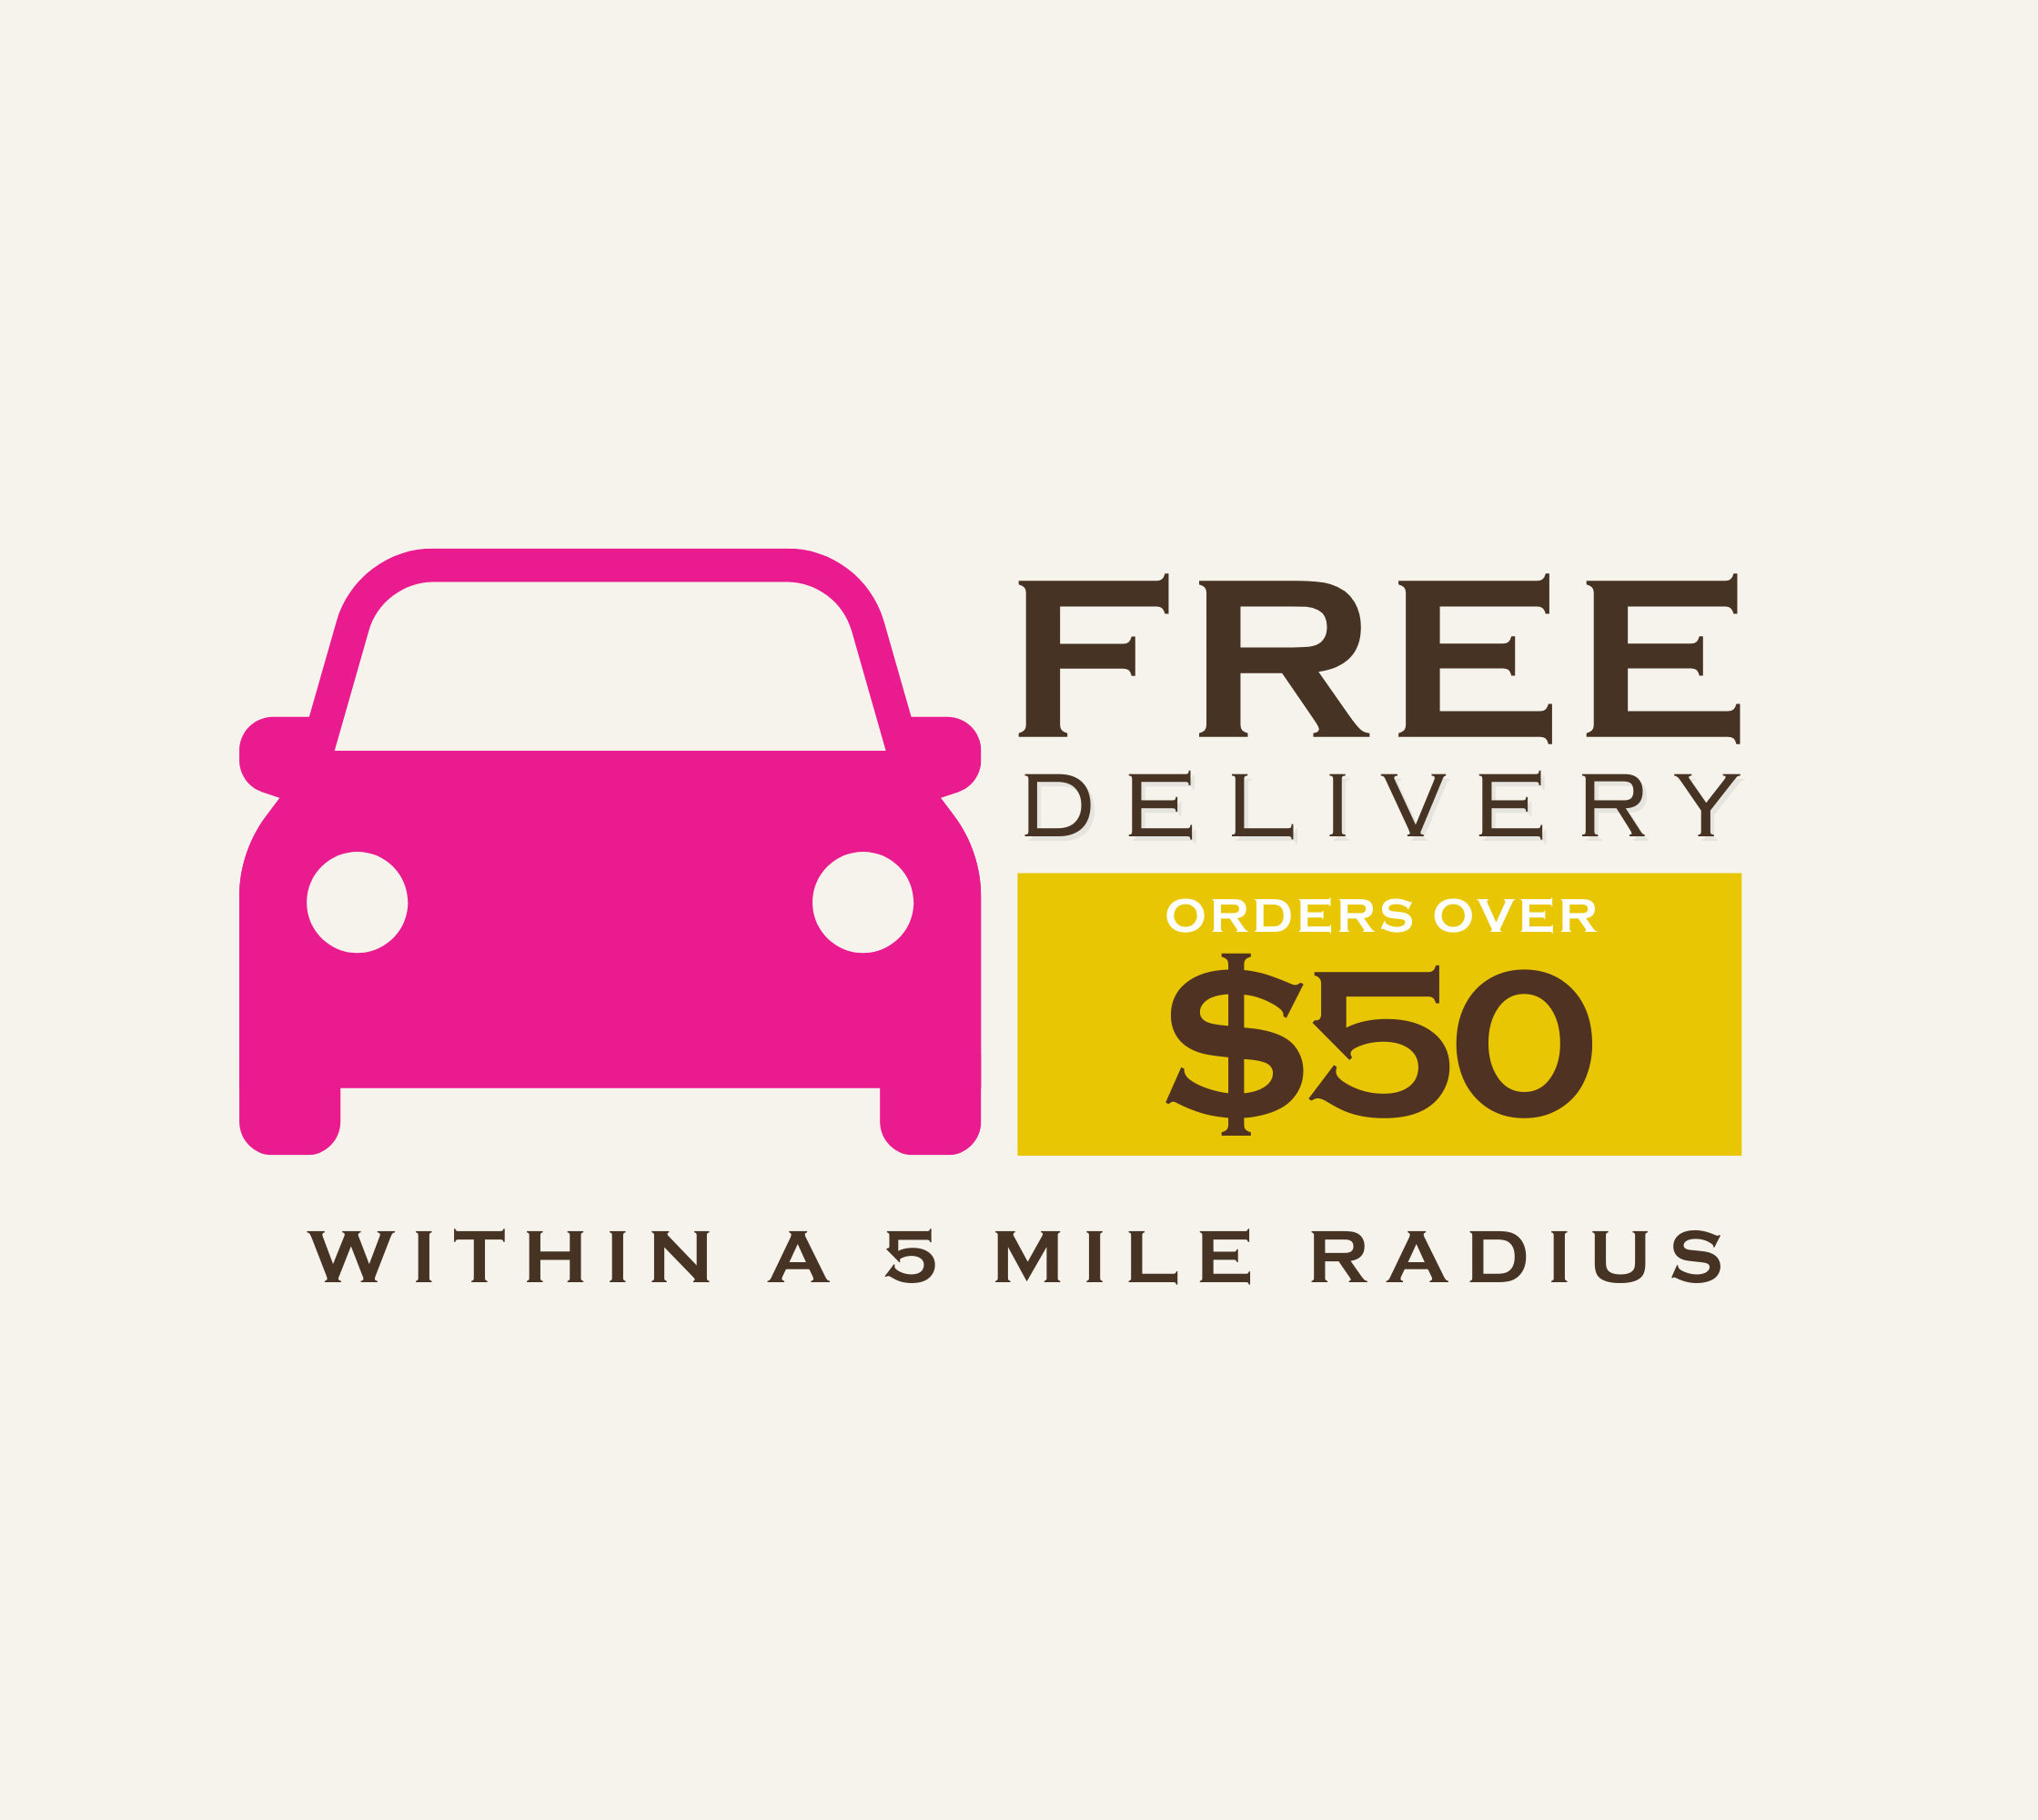 Free Delivery for orders over $50 within a five mile radius.